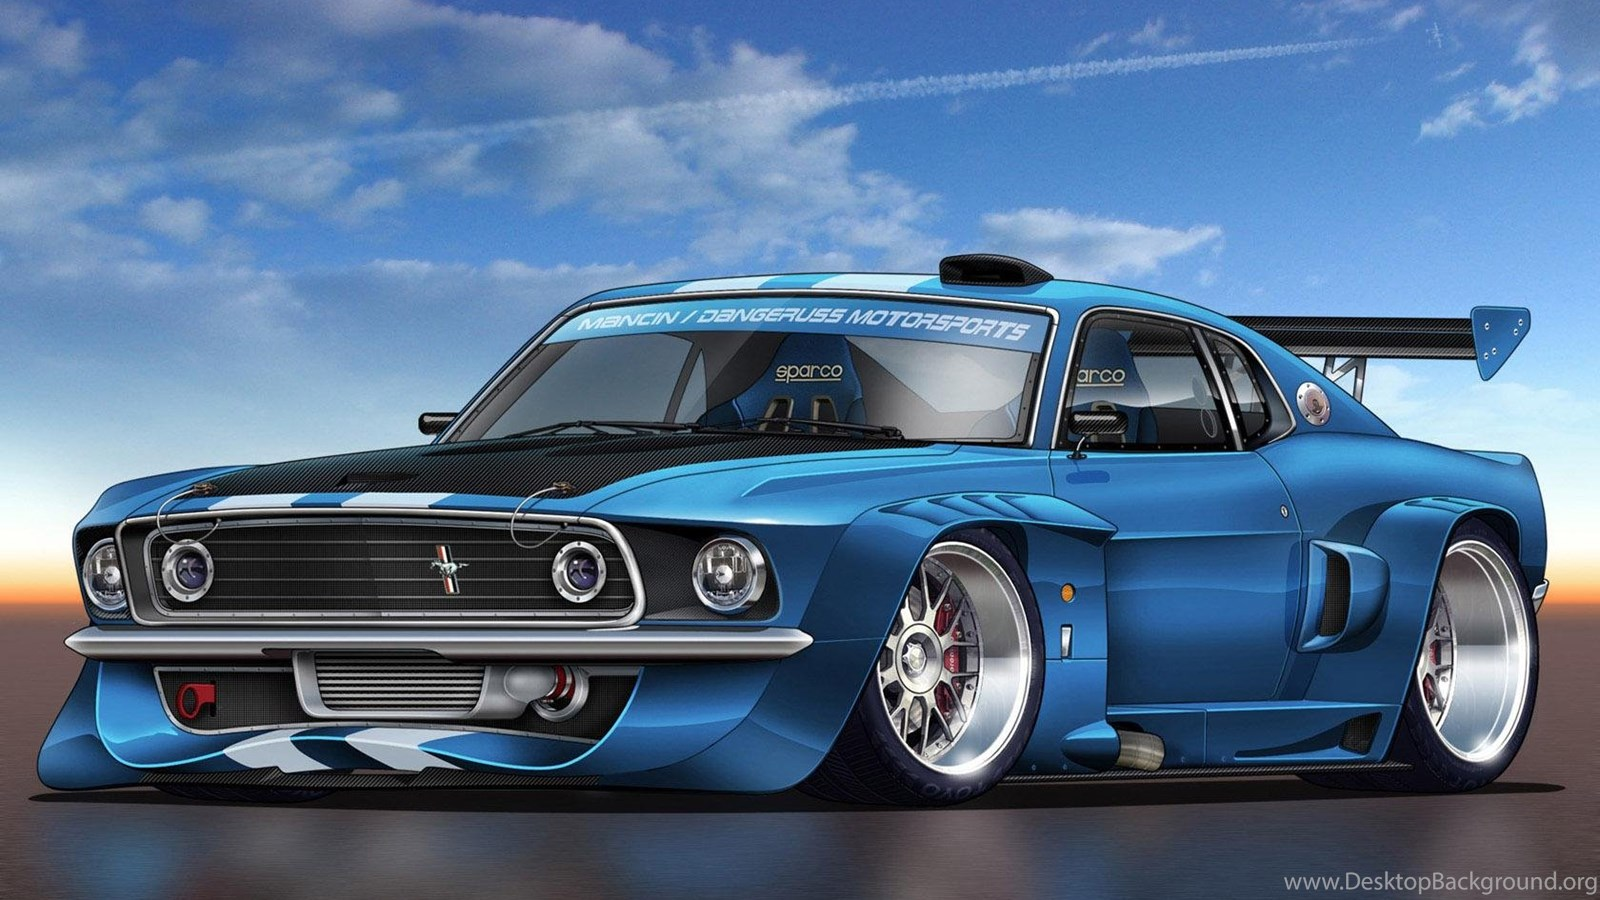 fords single girls The internet's largest ford mustang forum for all generations of ford mustangs, from classic mustangs to late model mustangs discuss your dream mustang on our ford mustang forum.